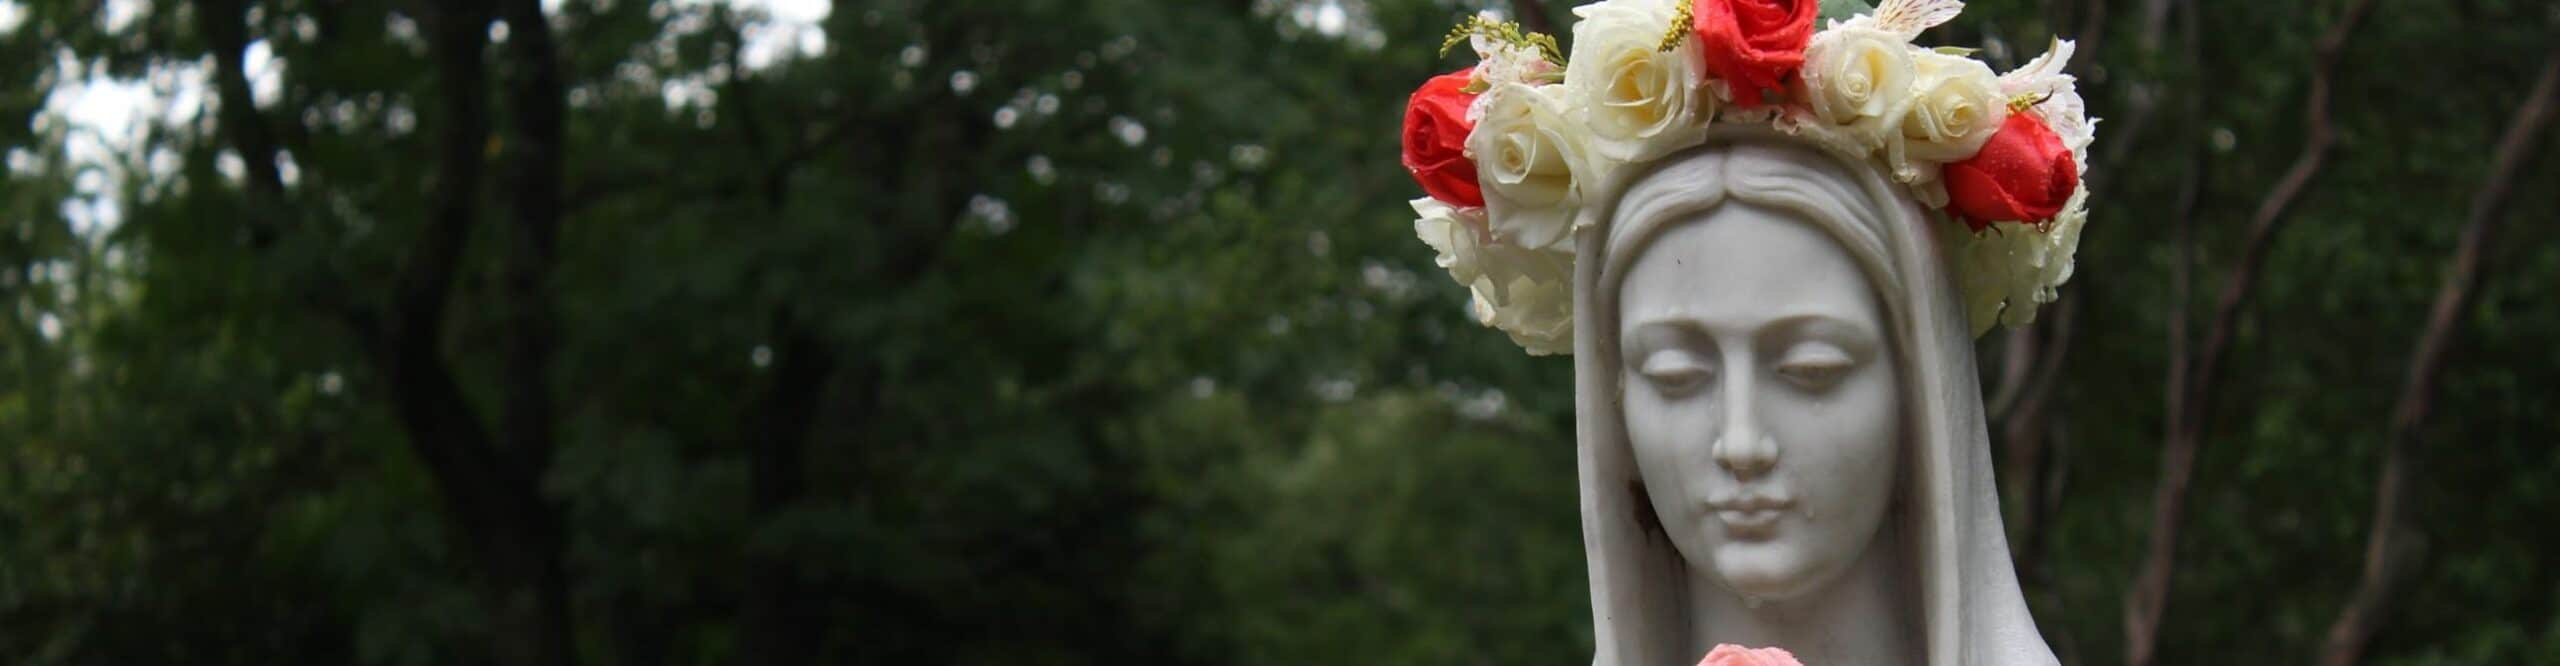 During May Crowning, a crown of flowers is placed on a statue of Mary.